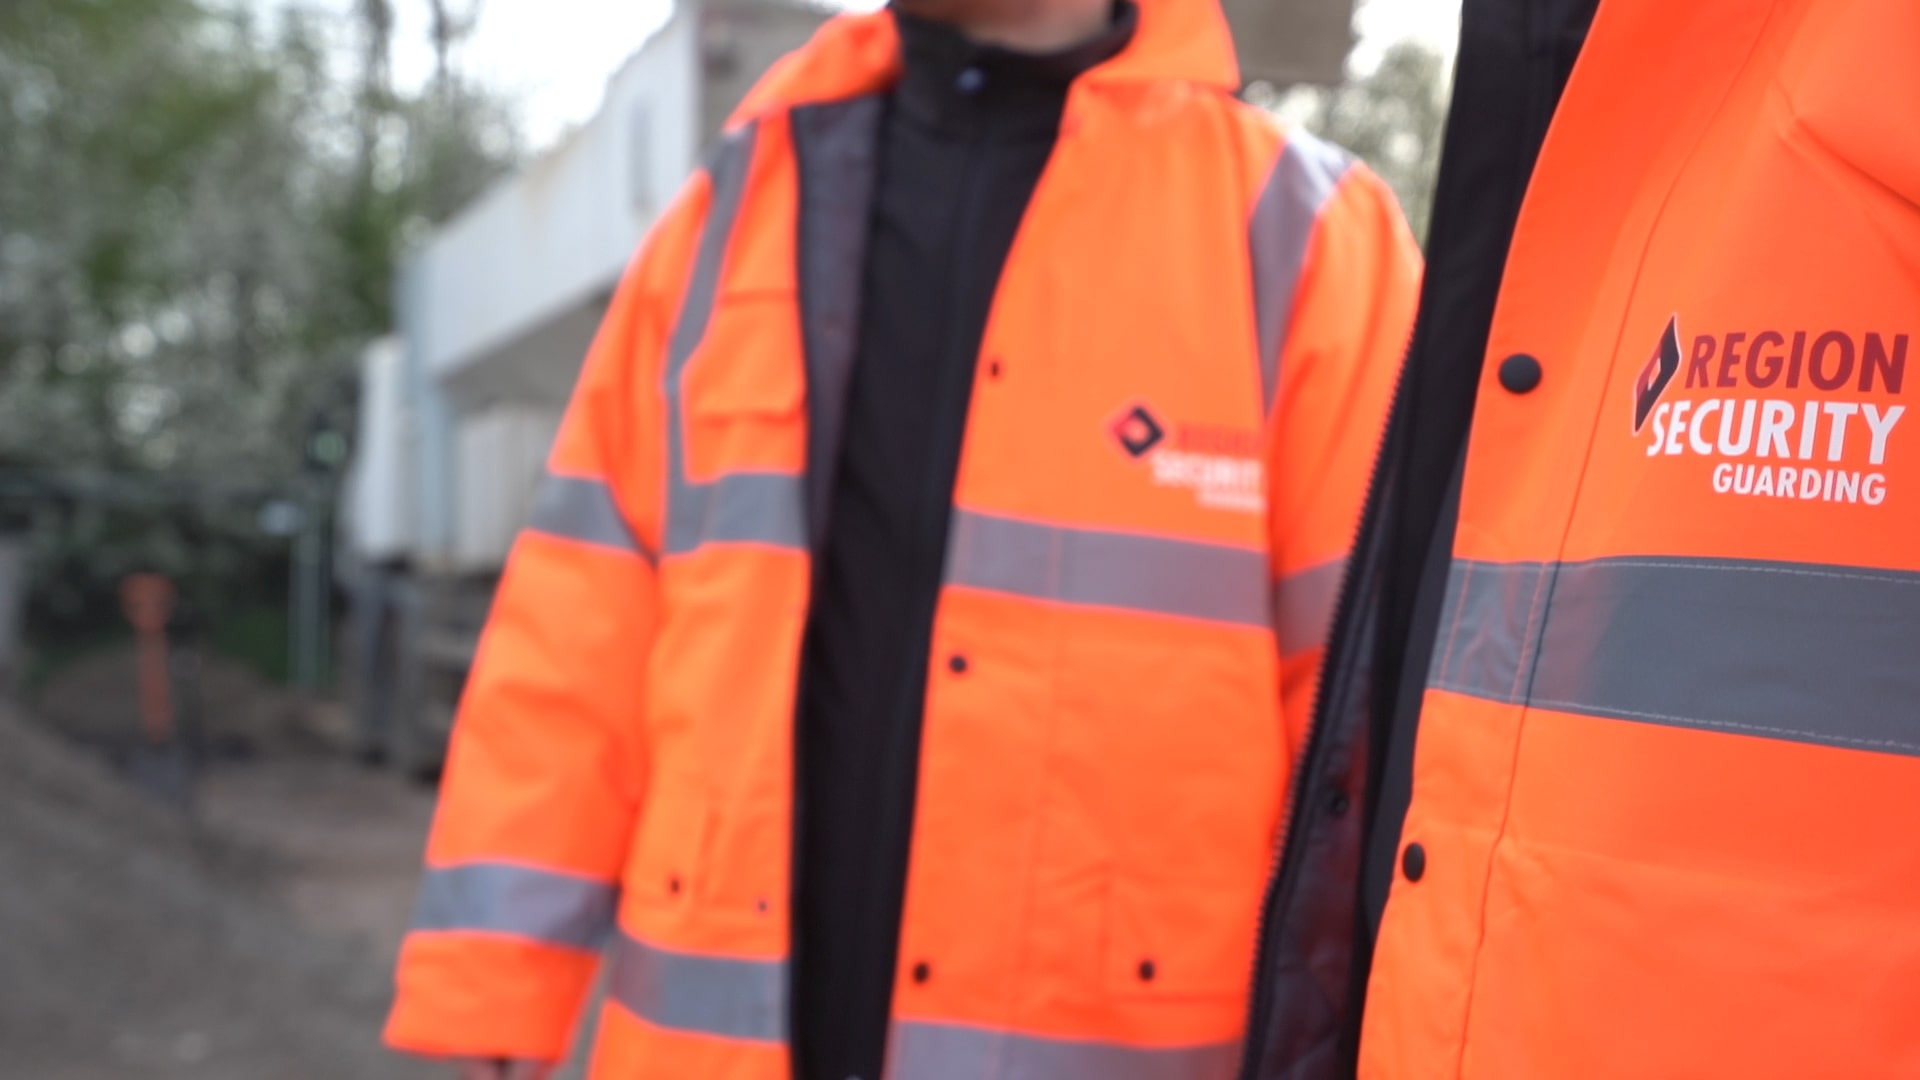 north-london-security-services